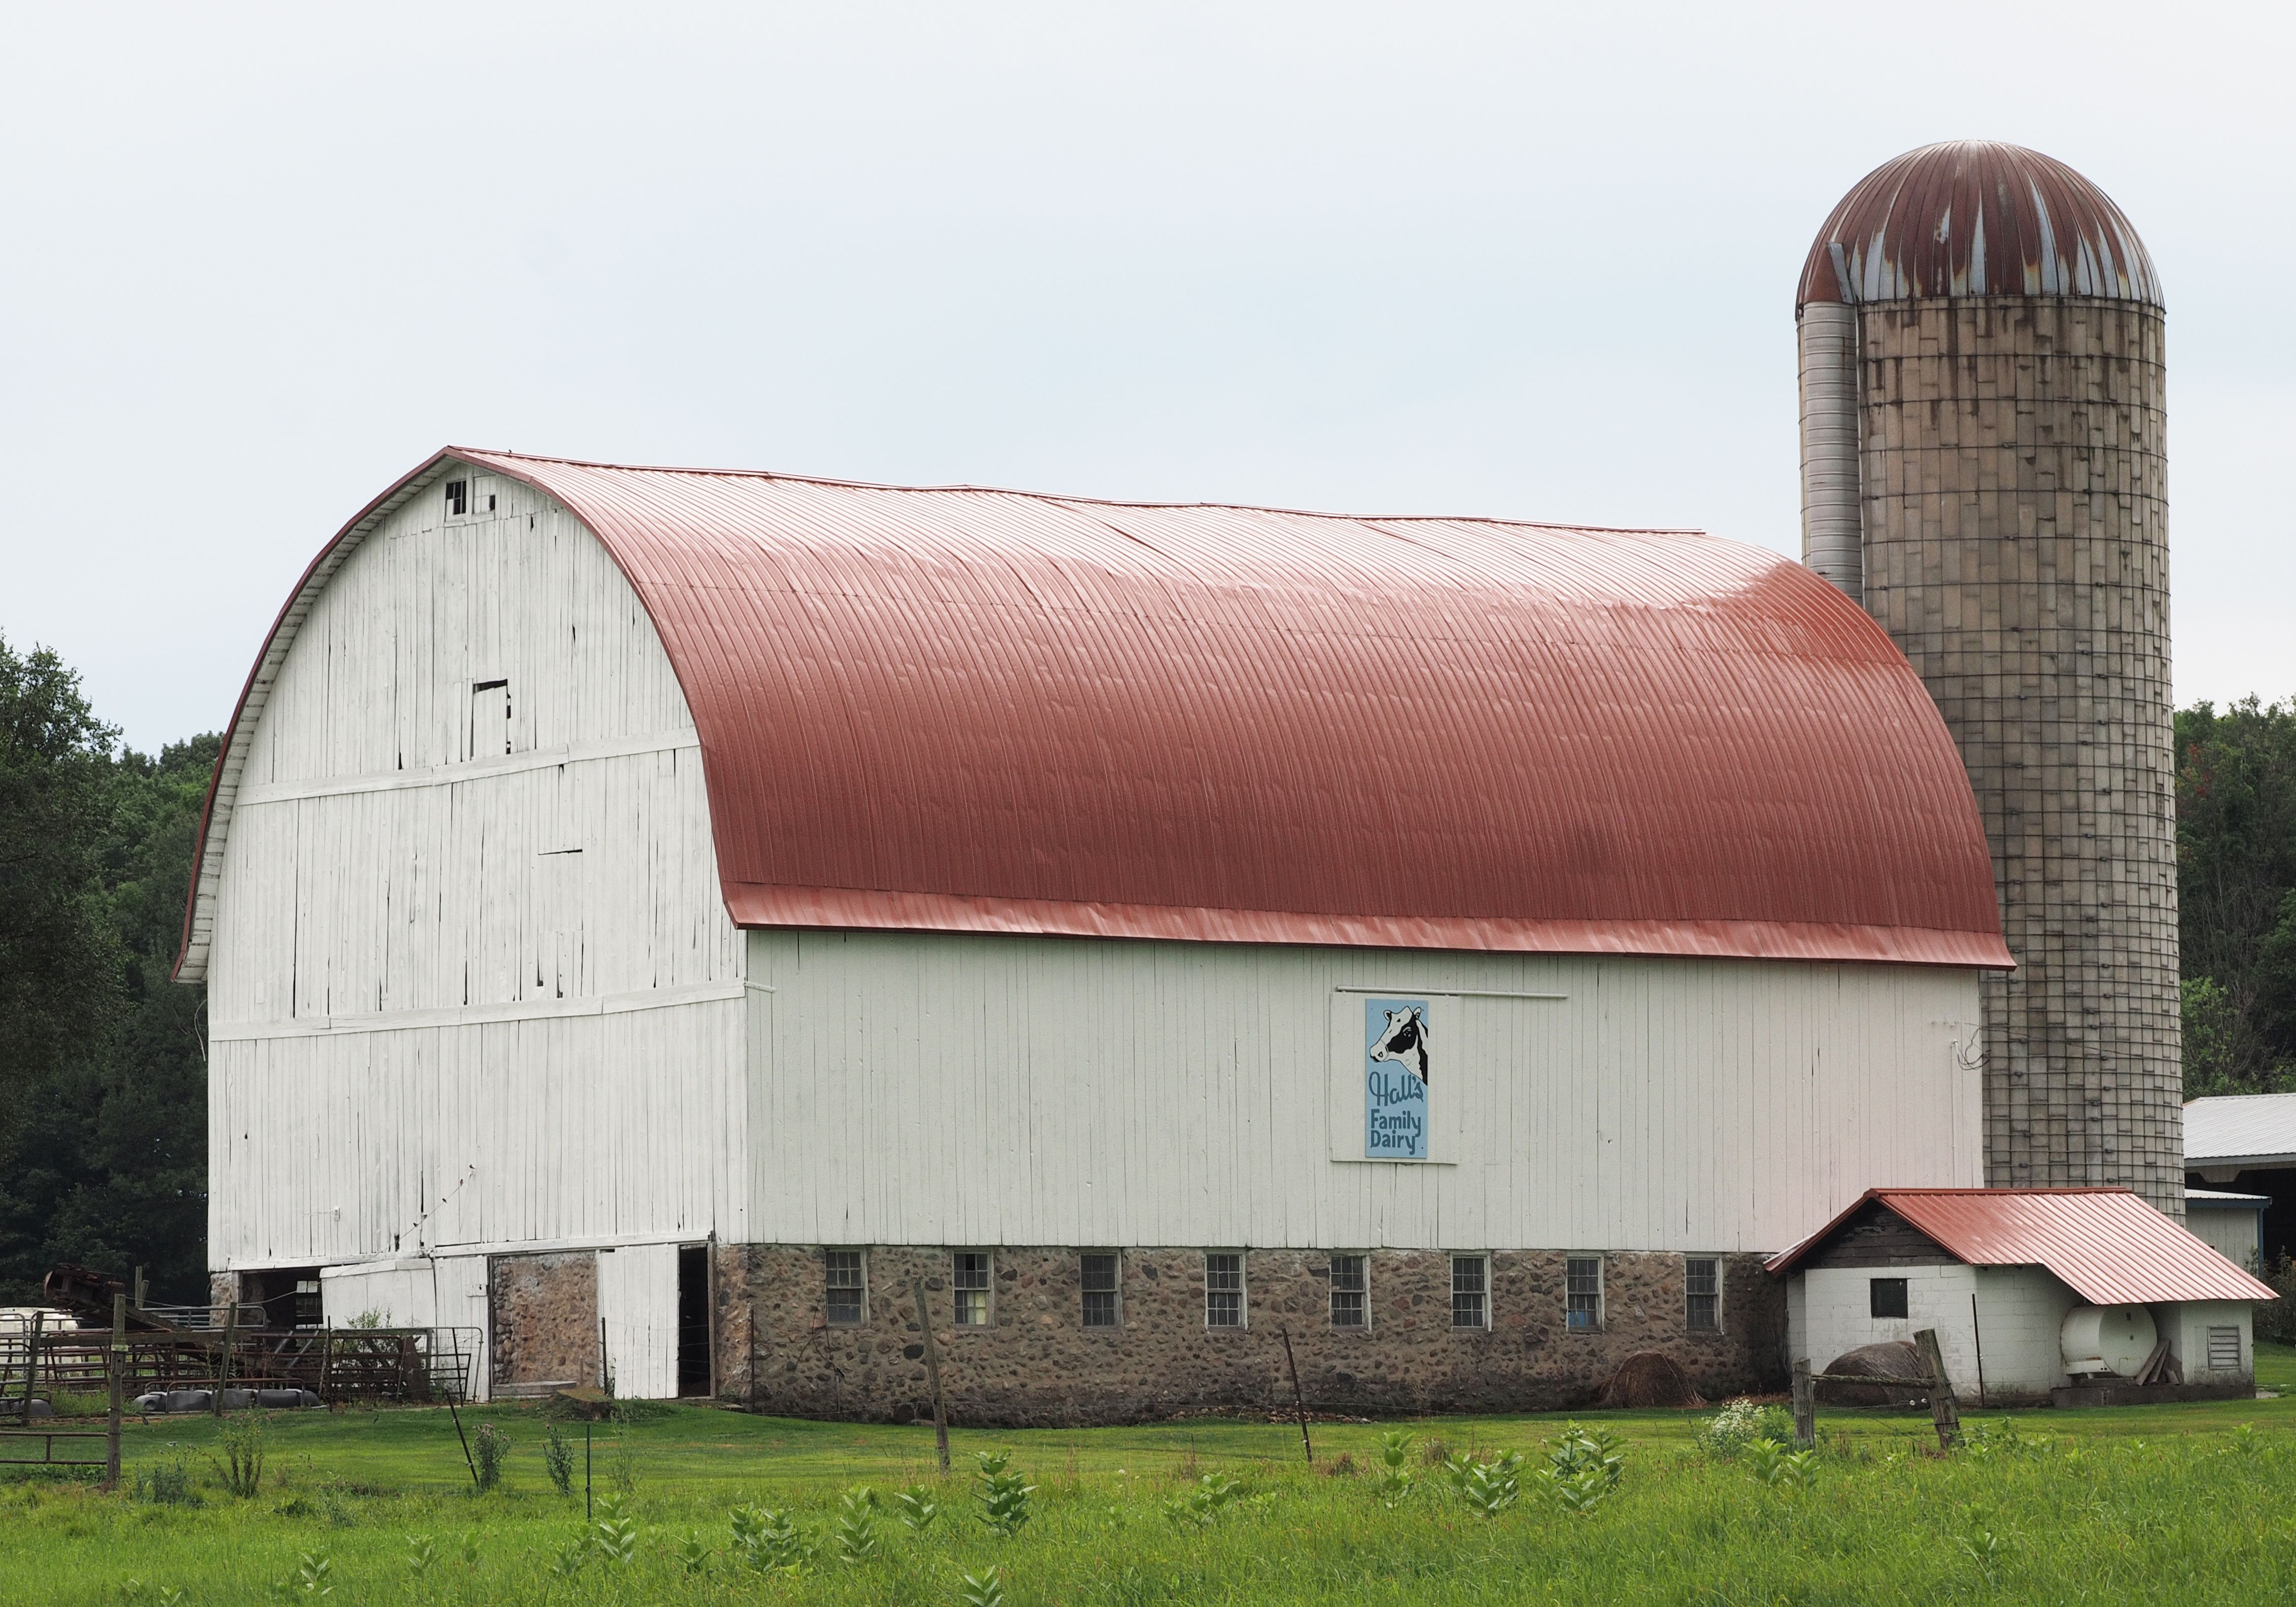 Dairy barn with copper roof, Michigan. Farm buildings